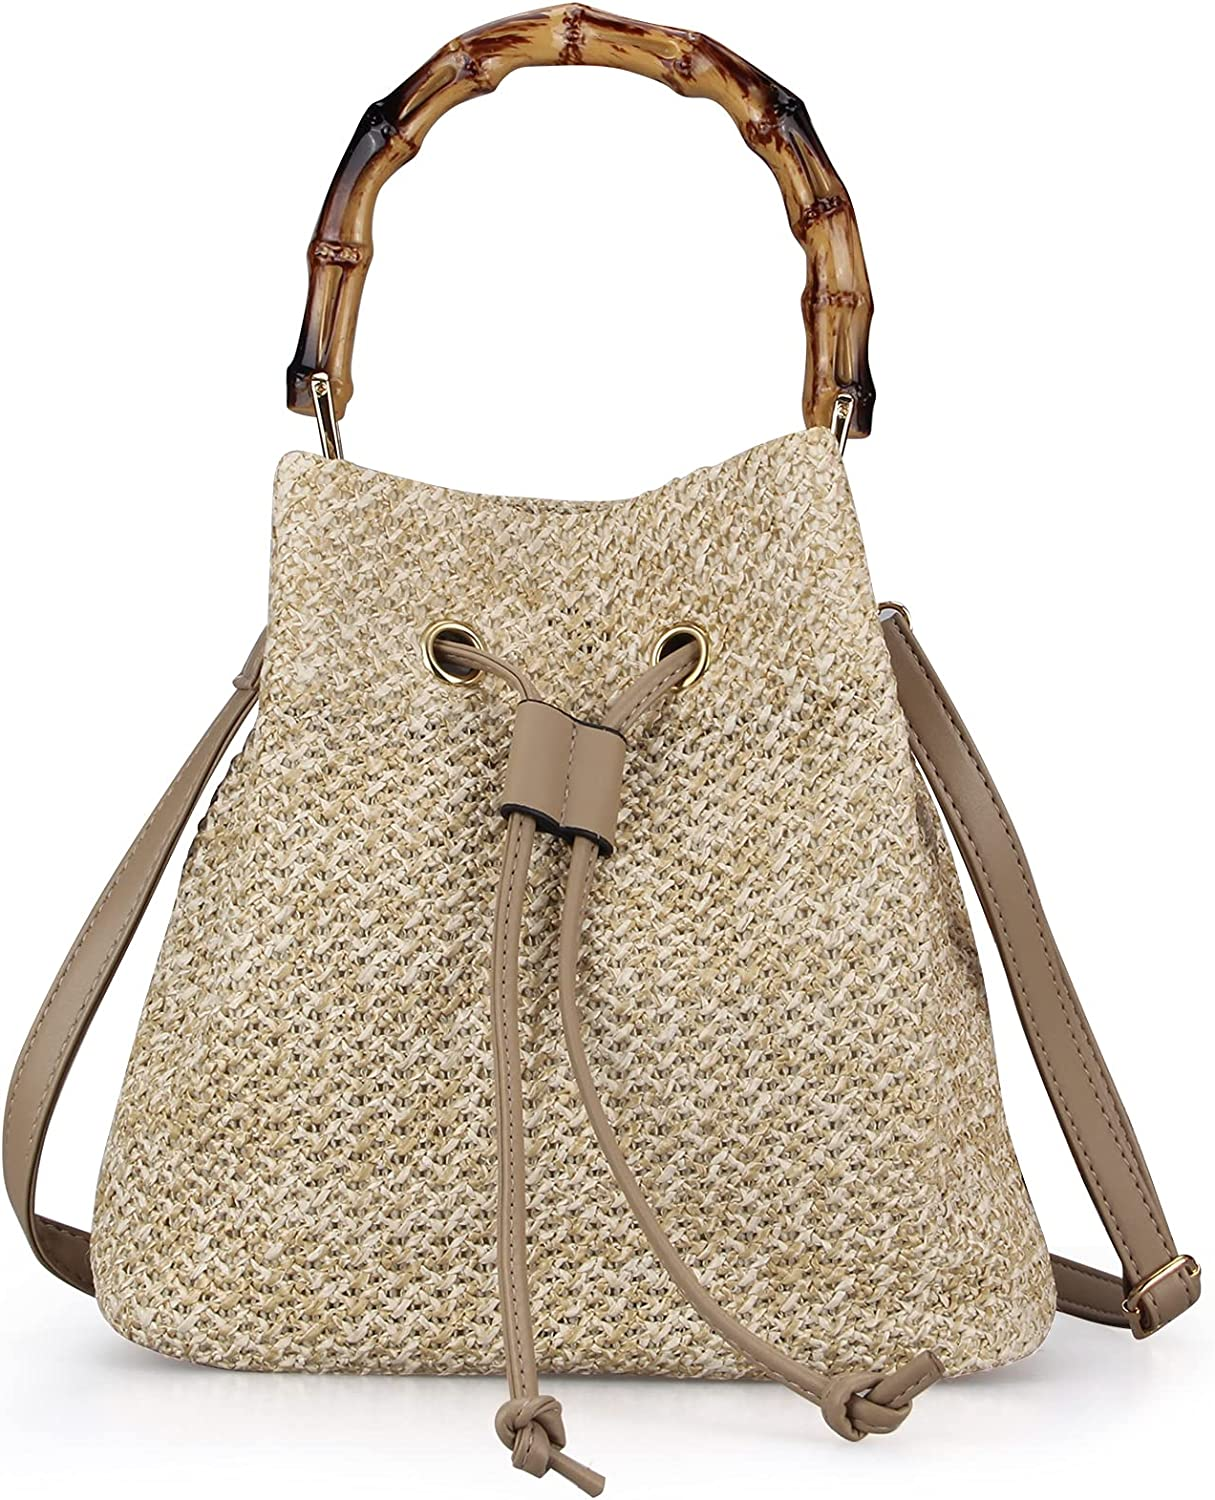 Straw Now on sale Bag Shoulder for Women Beach P Casual Crochet Sales for sale Handmade